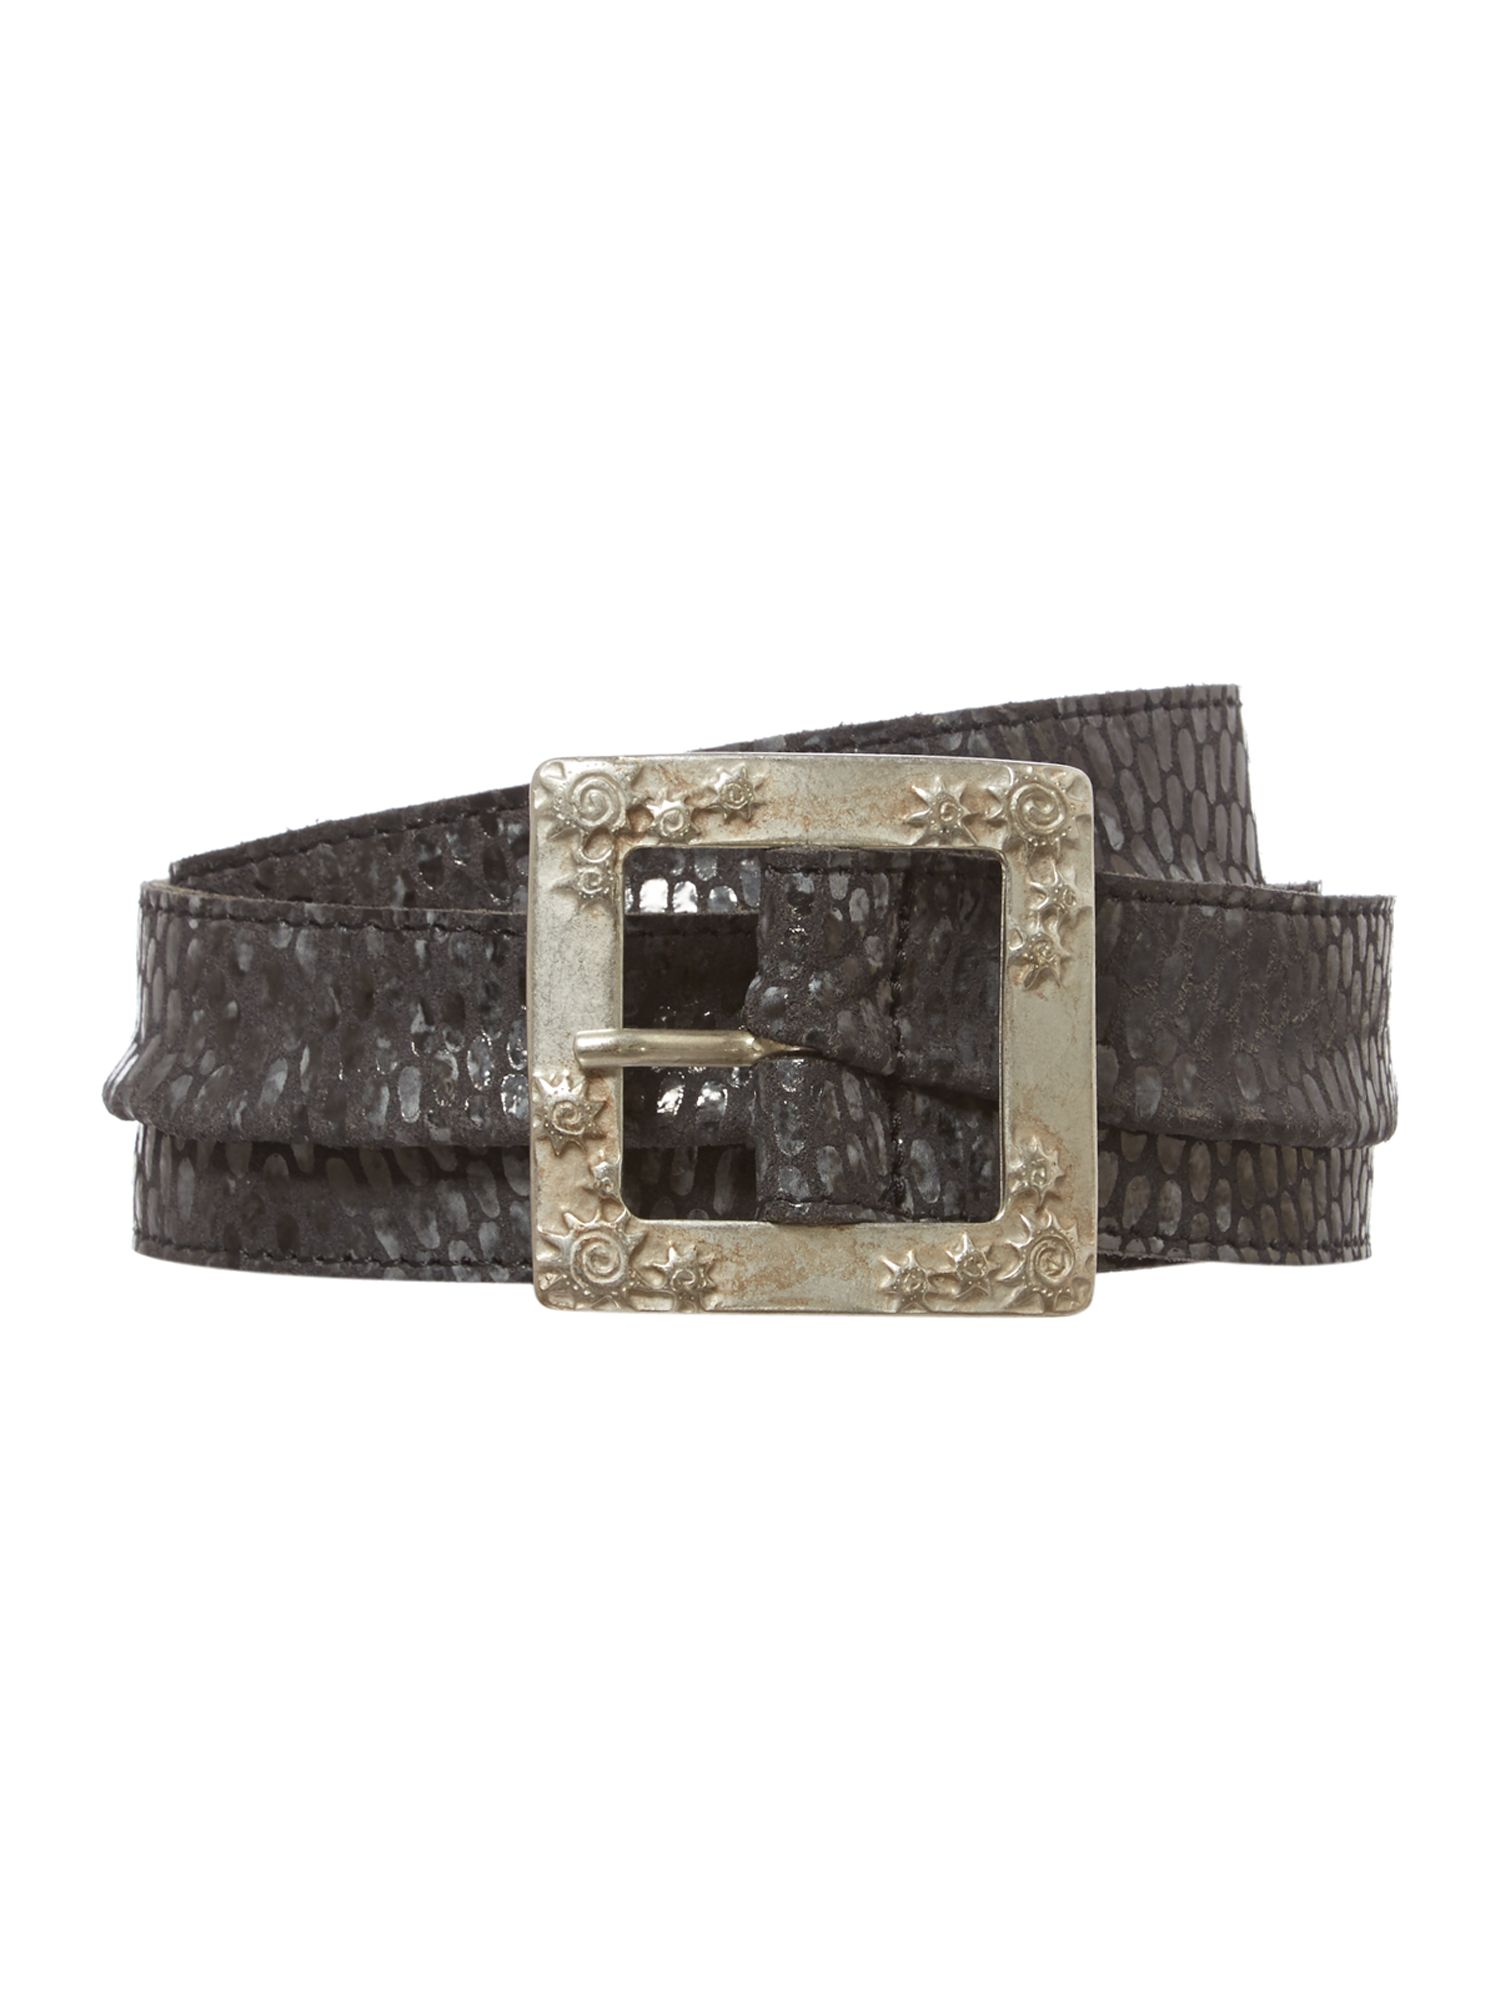 Snake leather belt